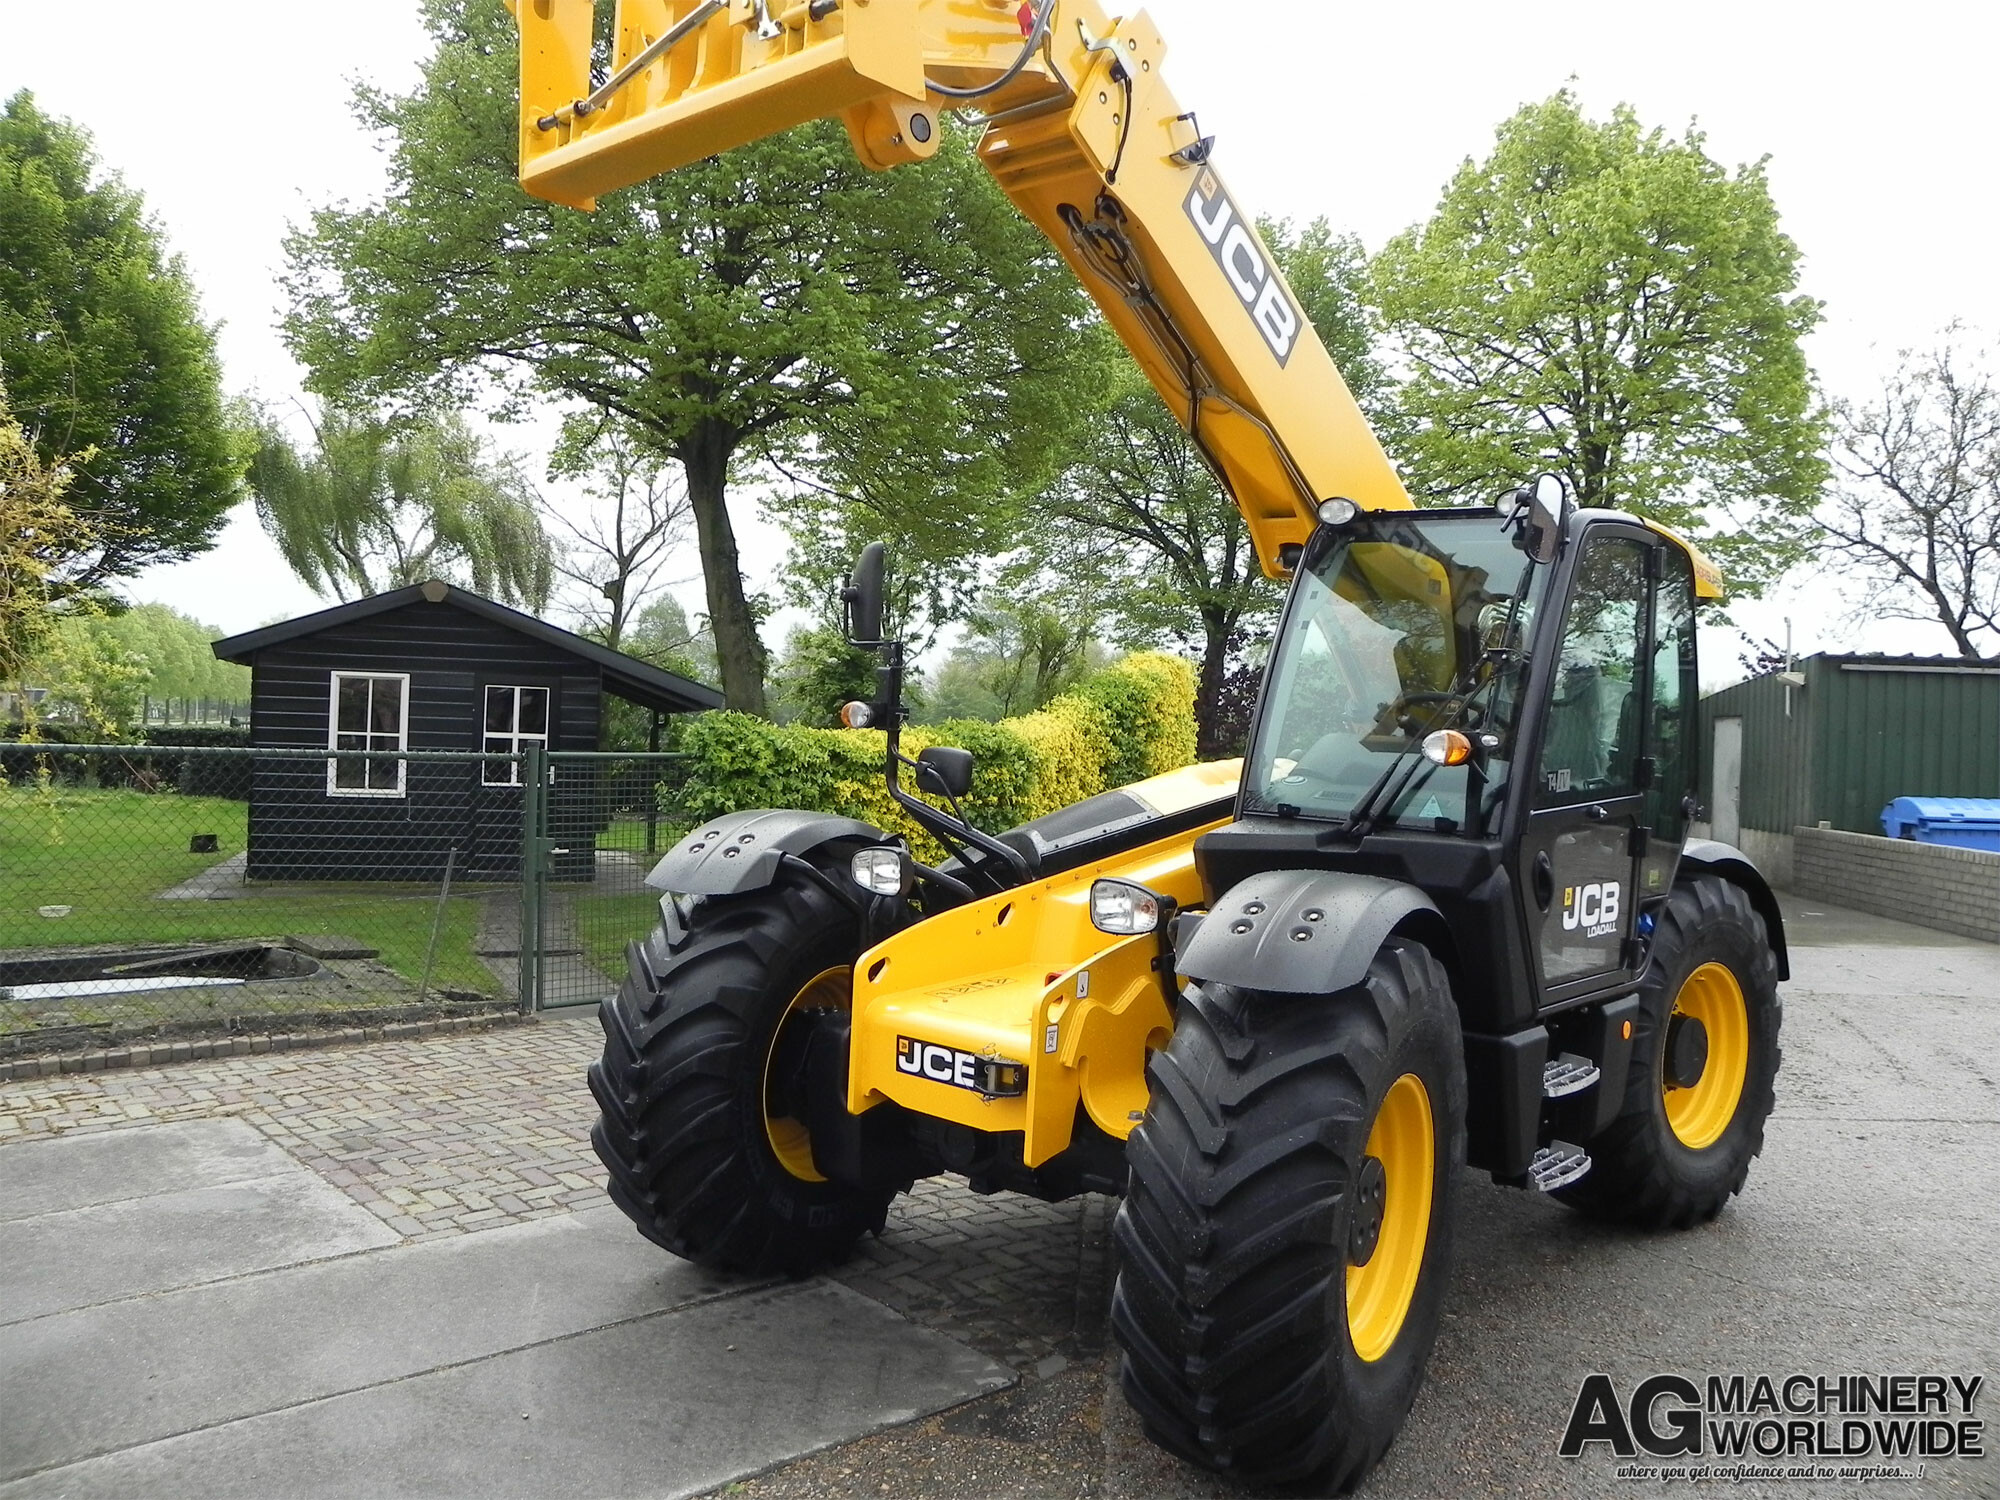 AGMachinery Worldwide stock list of new, used, demo and